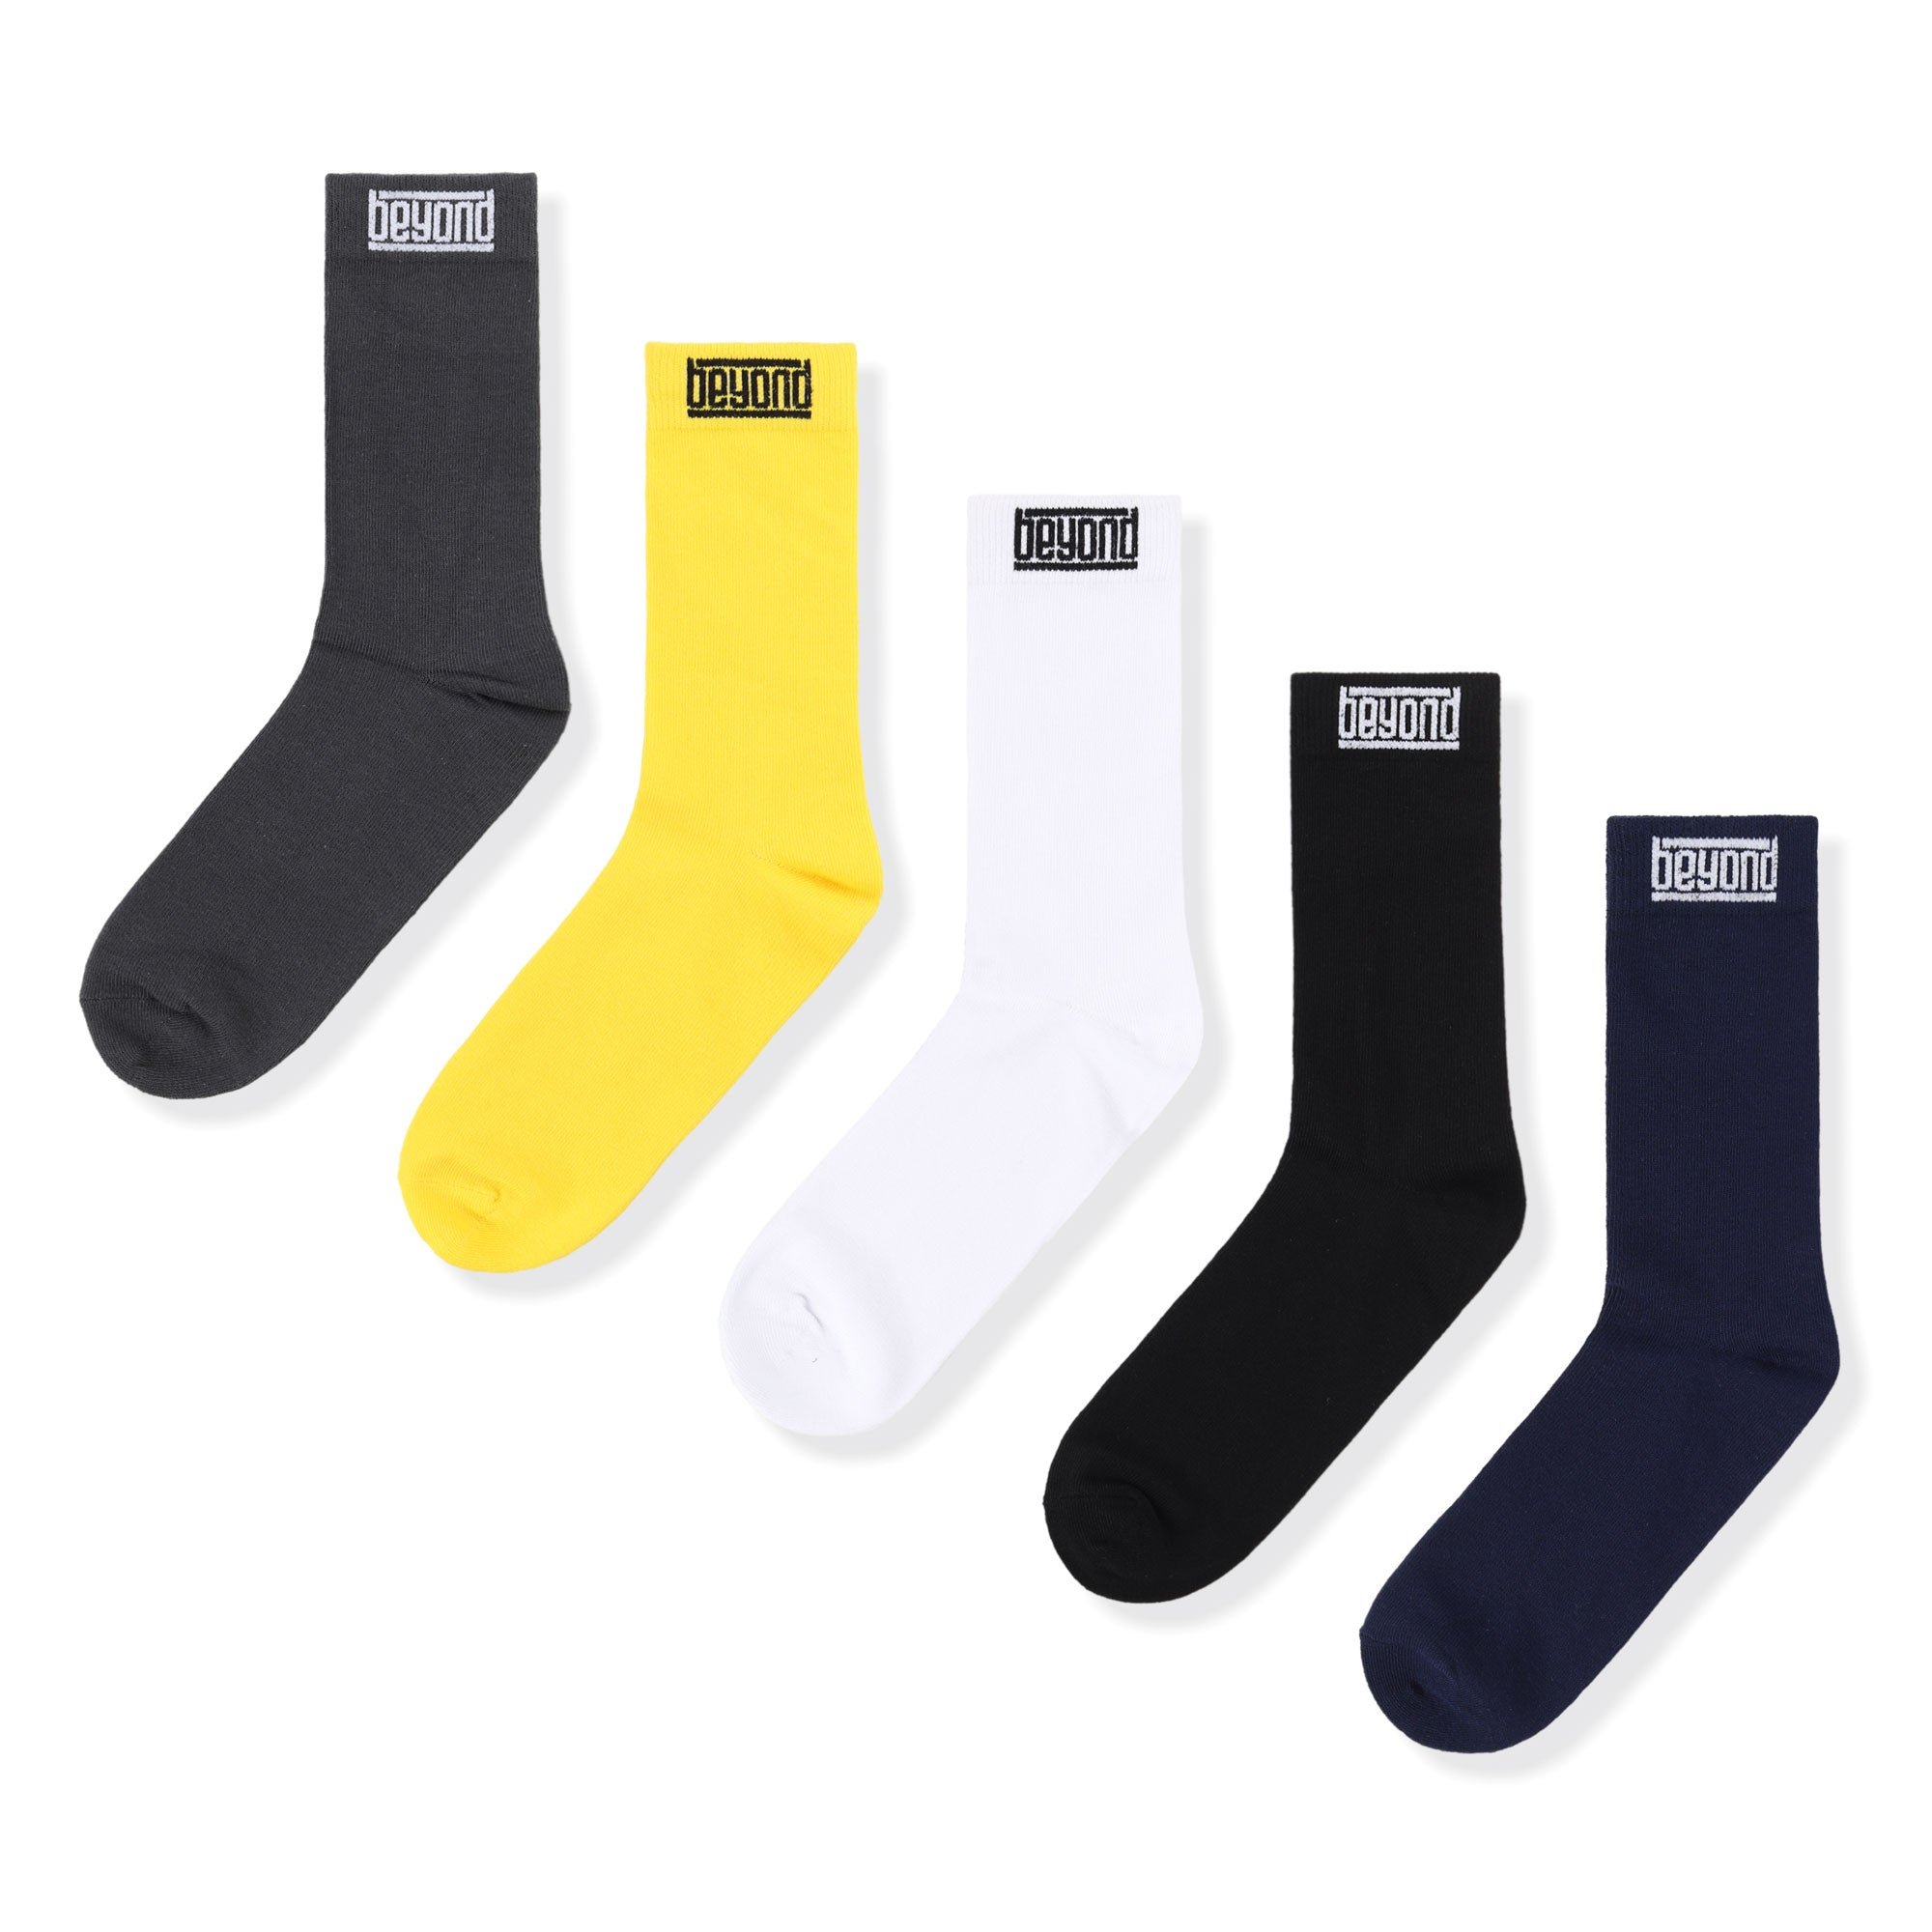 Beyond Crew Socks Product Photo #1